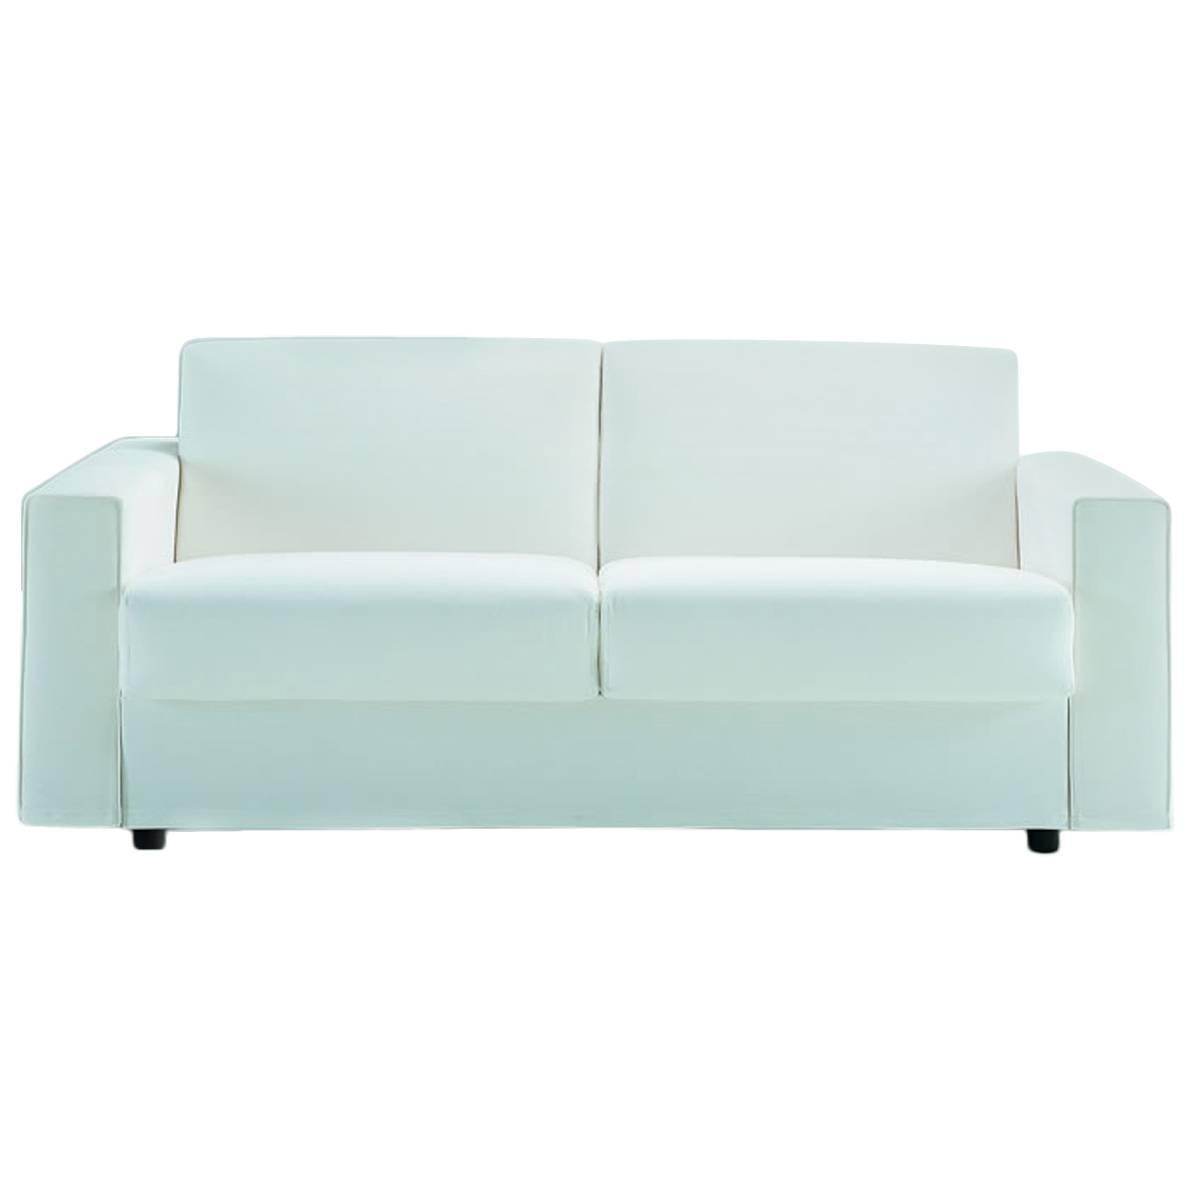 Modern Italian Sofa Bed SB52 Made In Italy Leather Or